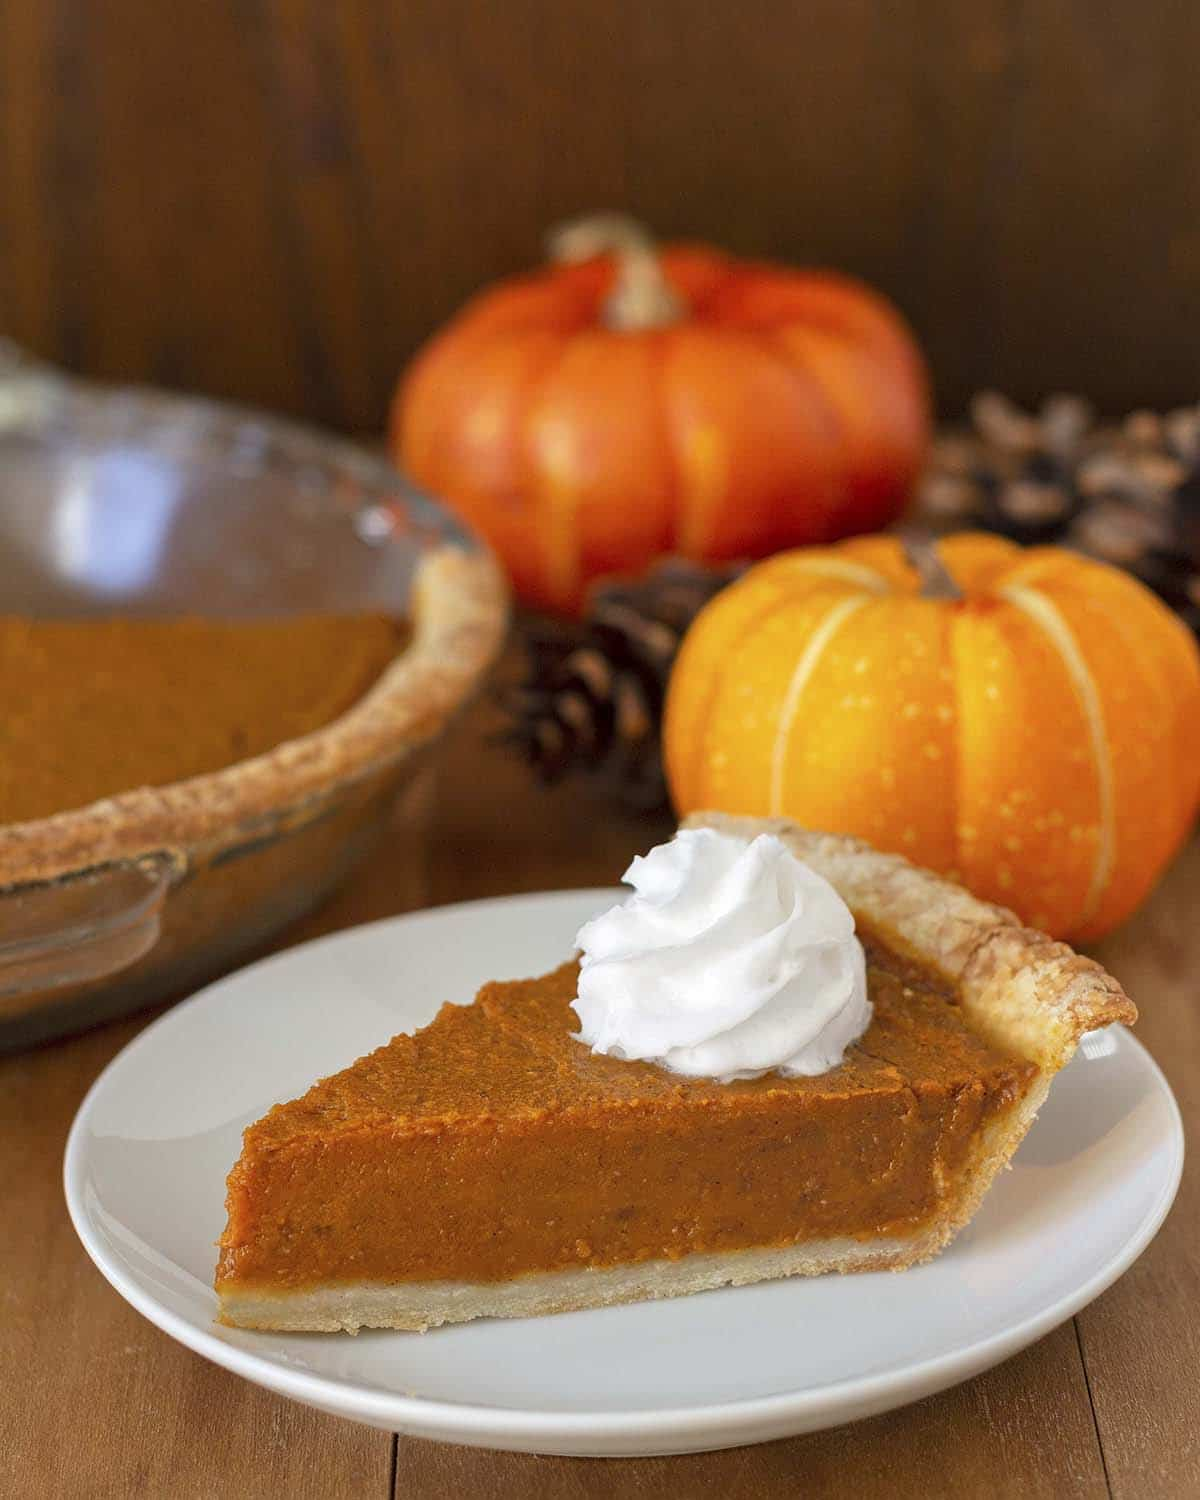 A slice of dairy and egg free pumpkin pie on a plate, the pie slice is topped with dairy-free whipped cream.